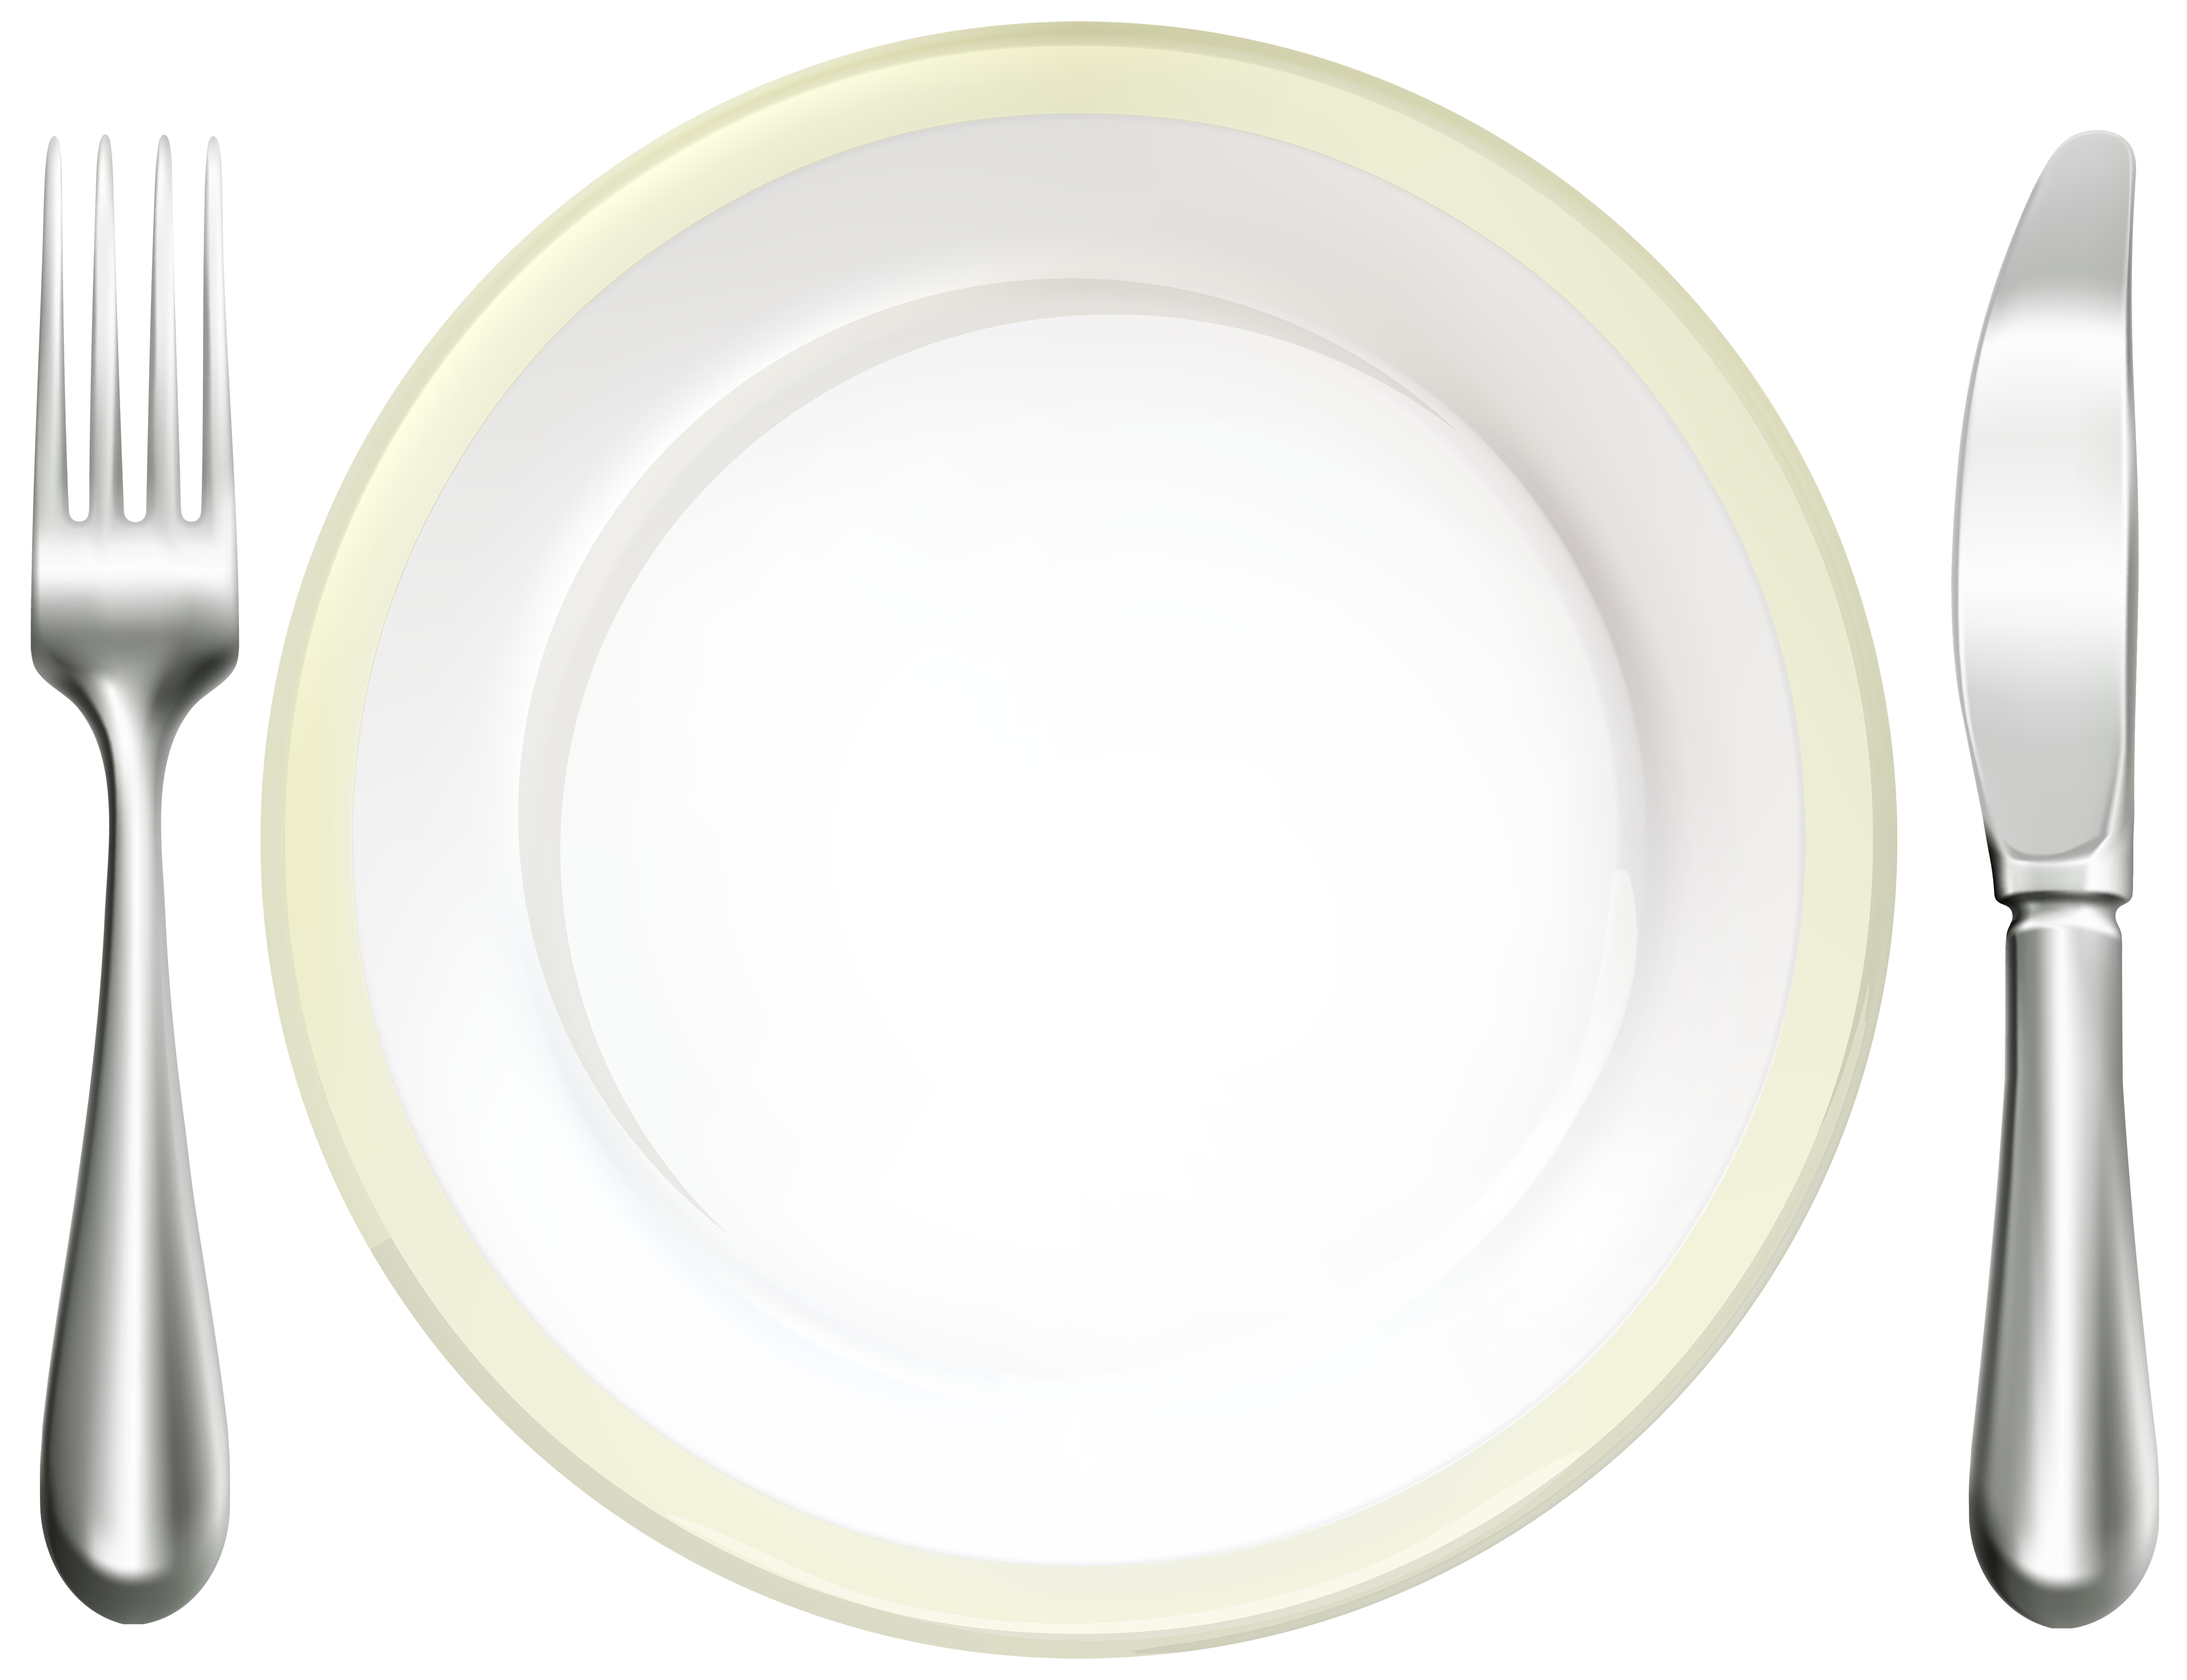 Plate clipart place setting, Plate place setting Transparent